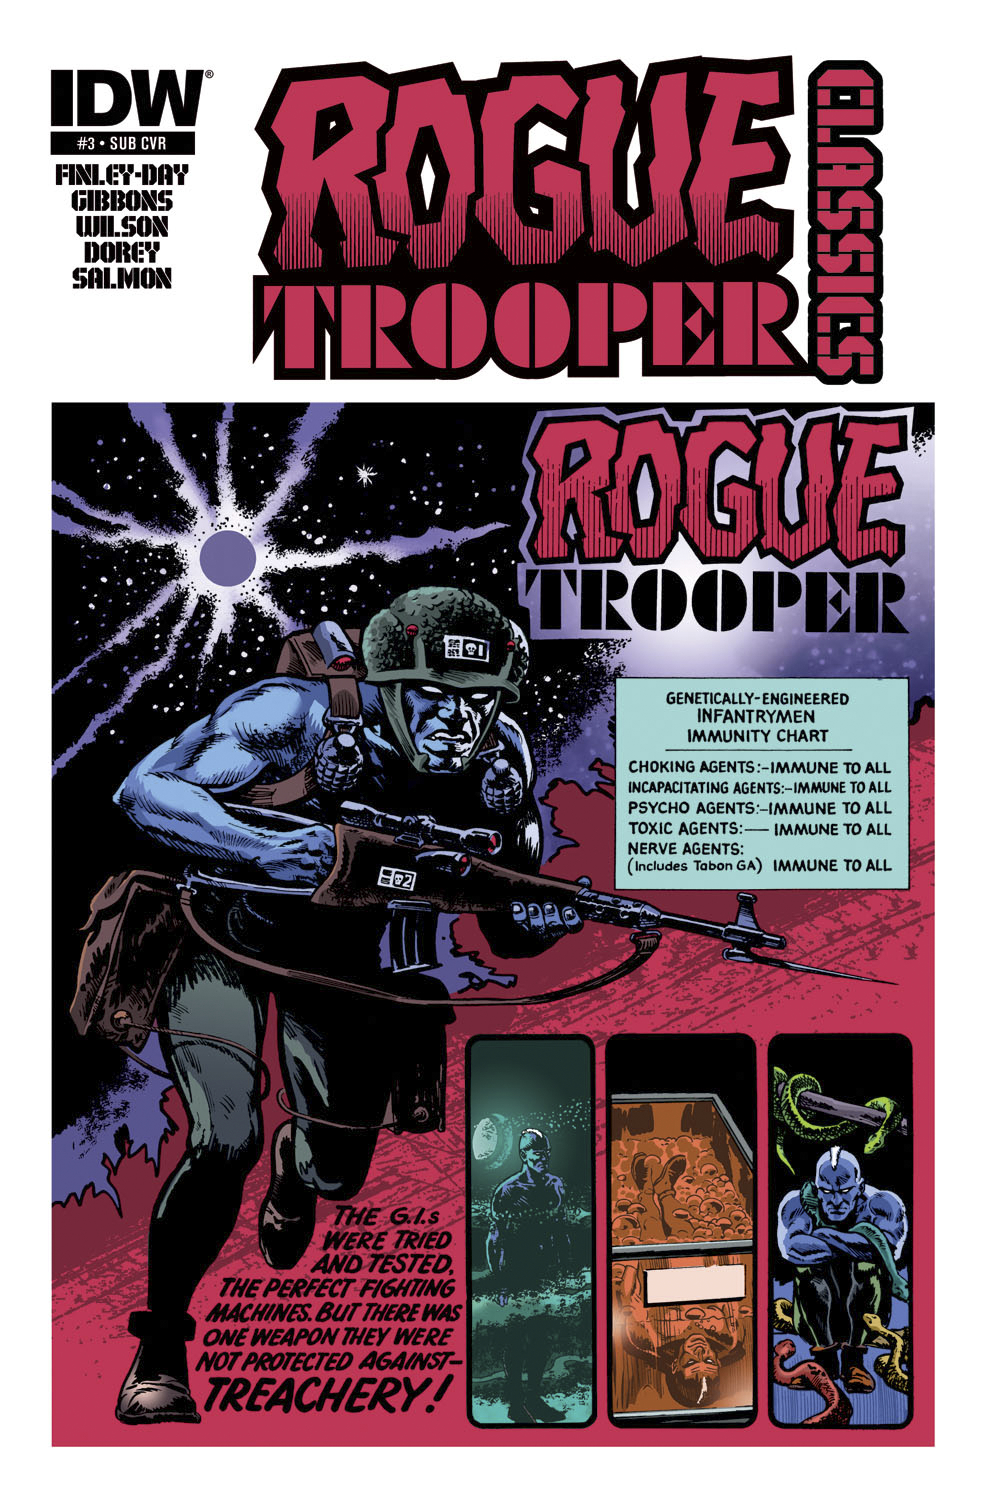 ROGUE TROOPER CLASSICS #3 (OF 12)